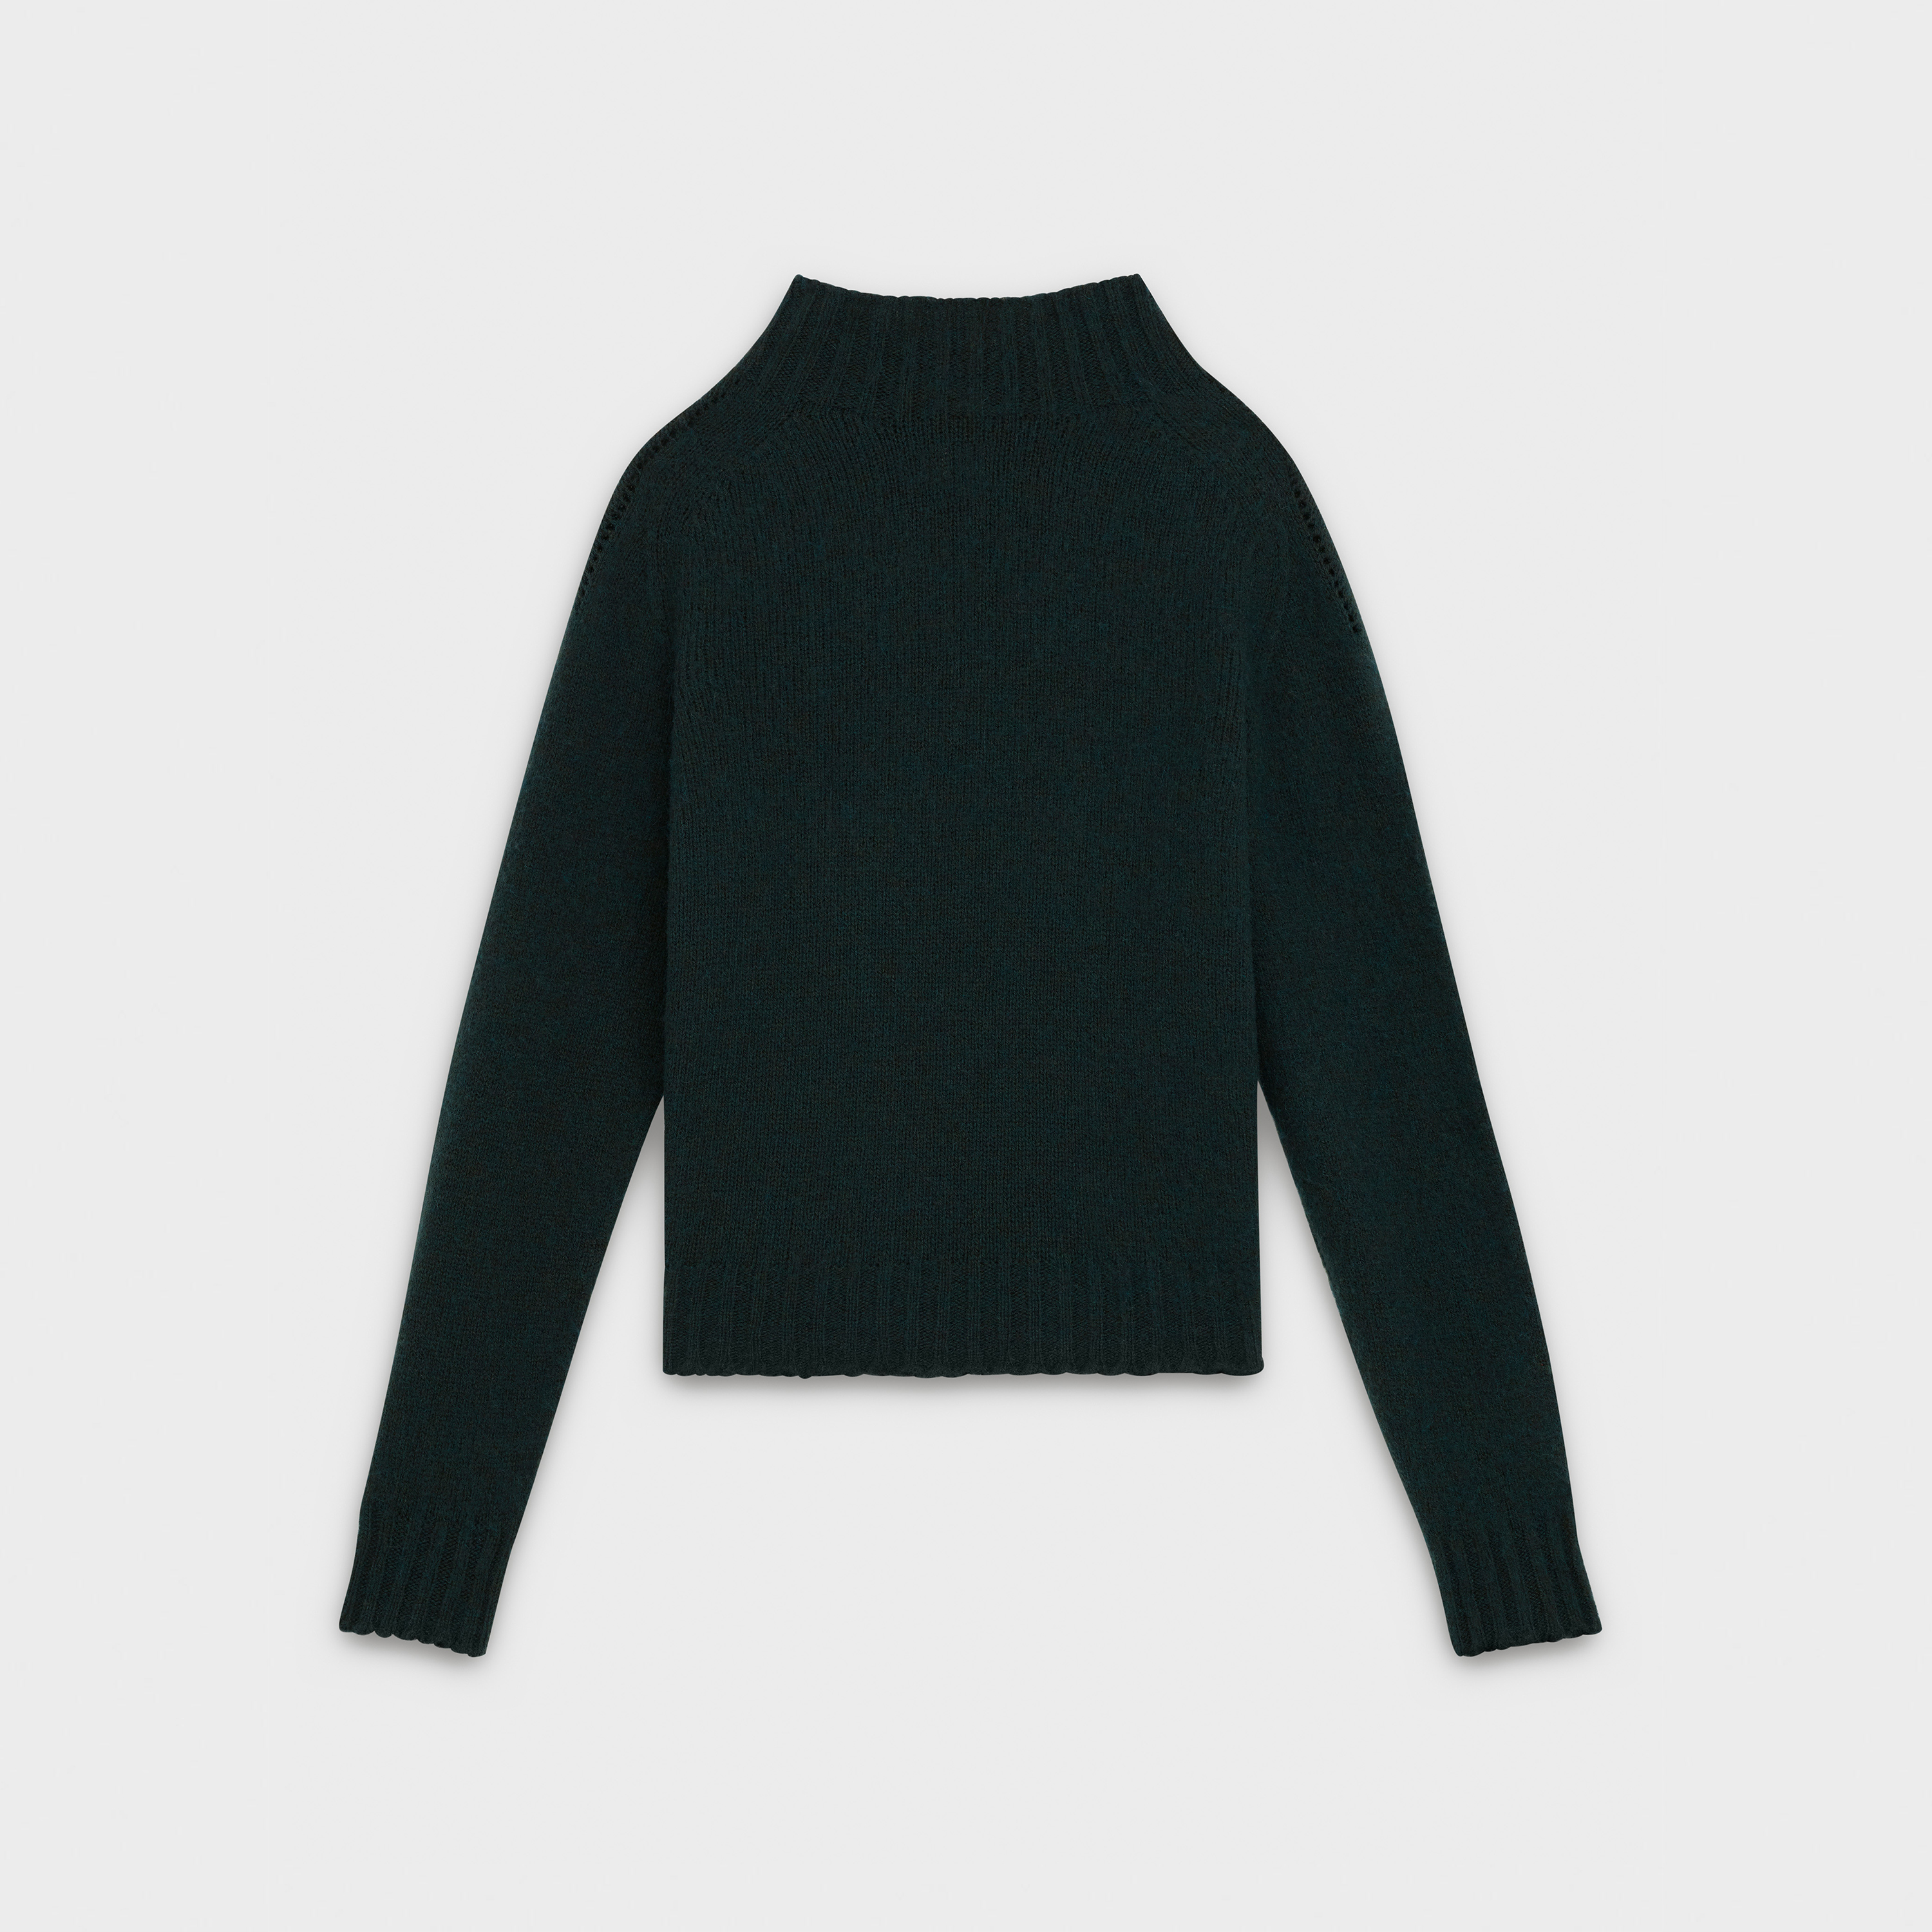 stand-up collar sweater in shetland wool | CELINE